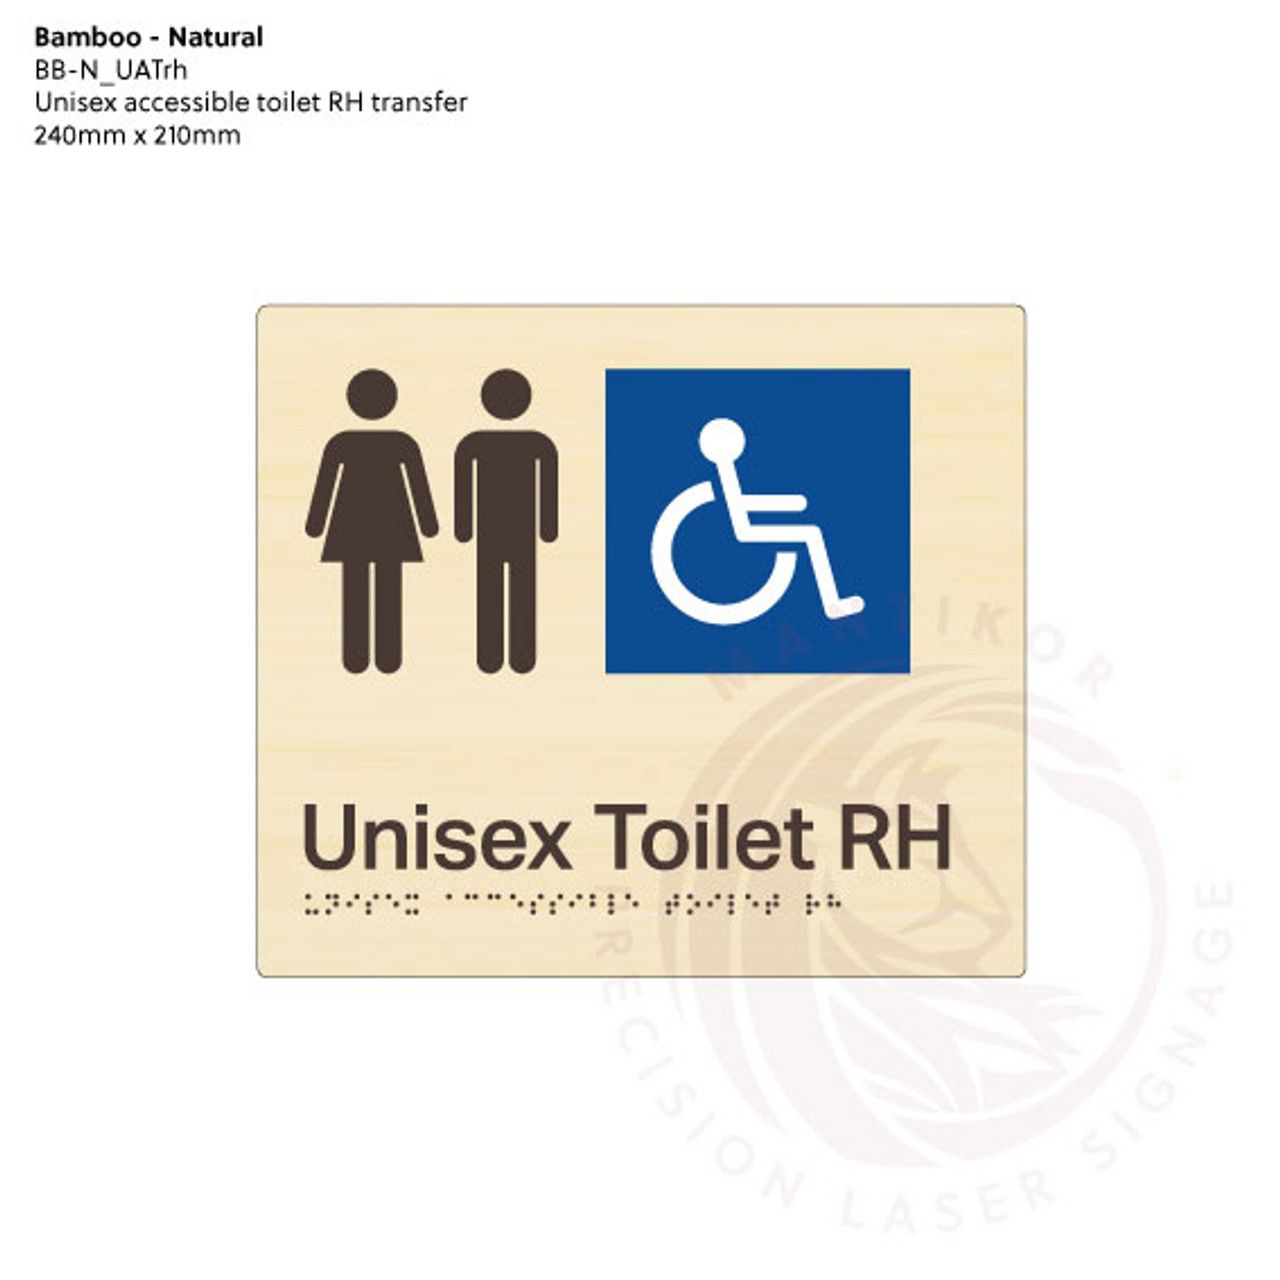 Natural Bamboo Tactile Braille Signs - Unisex Accessible Toilet RH